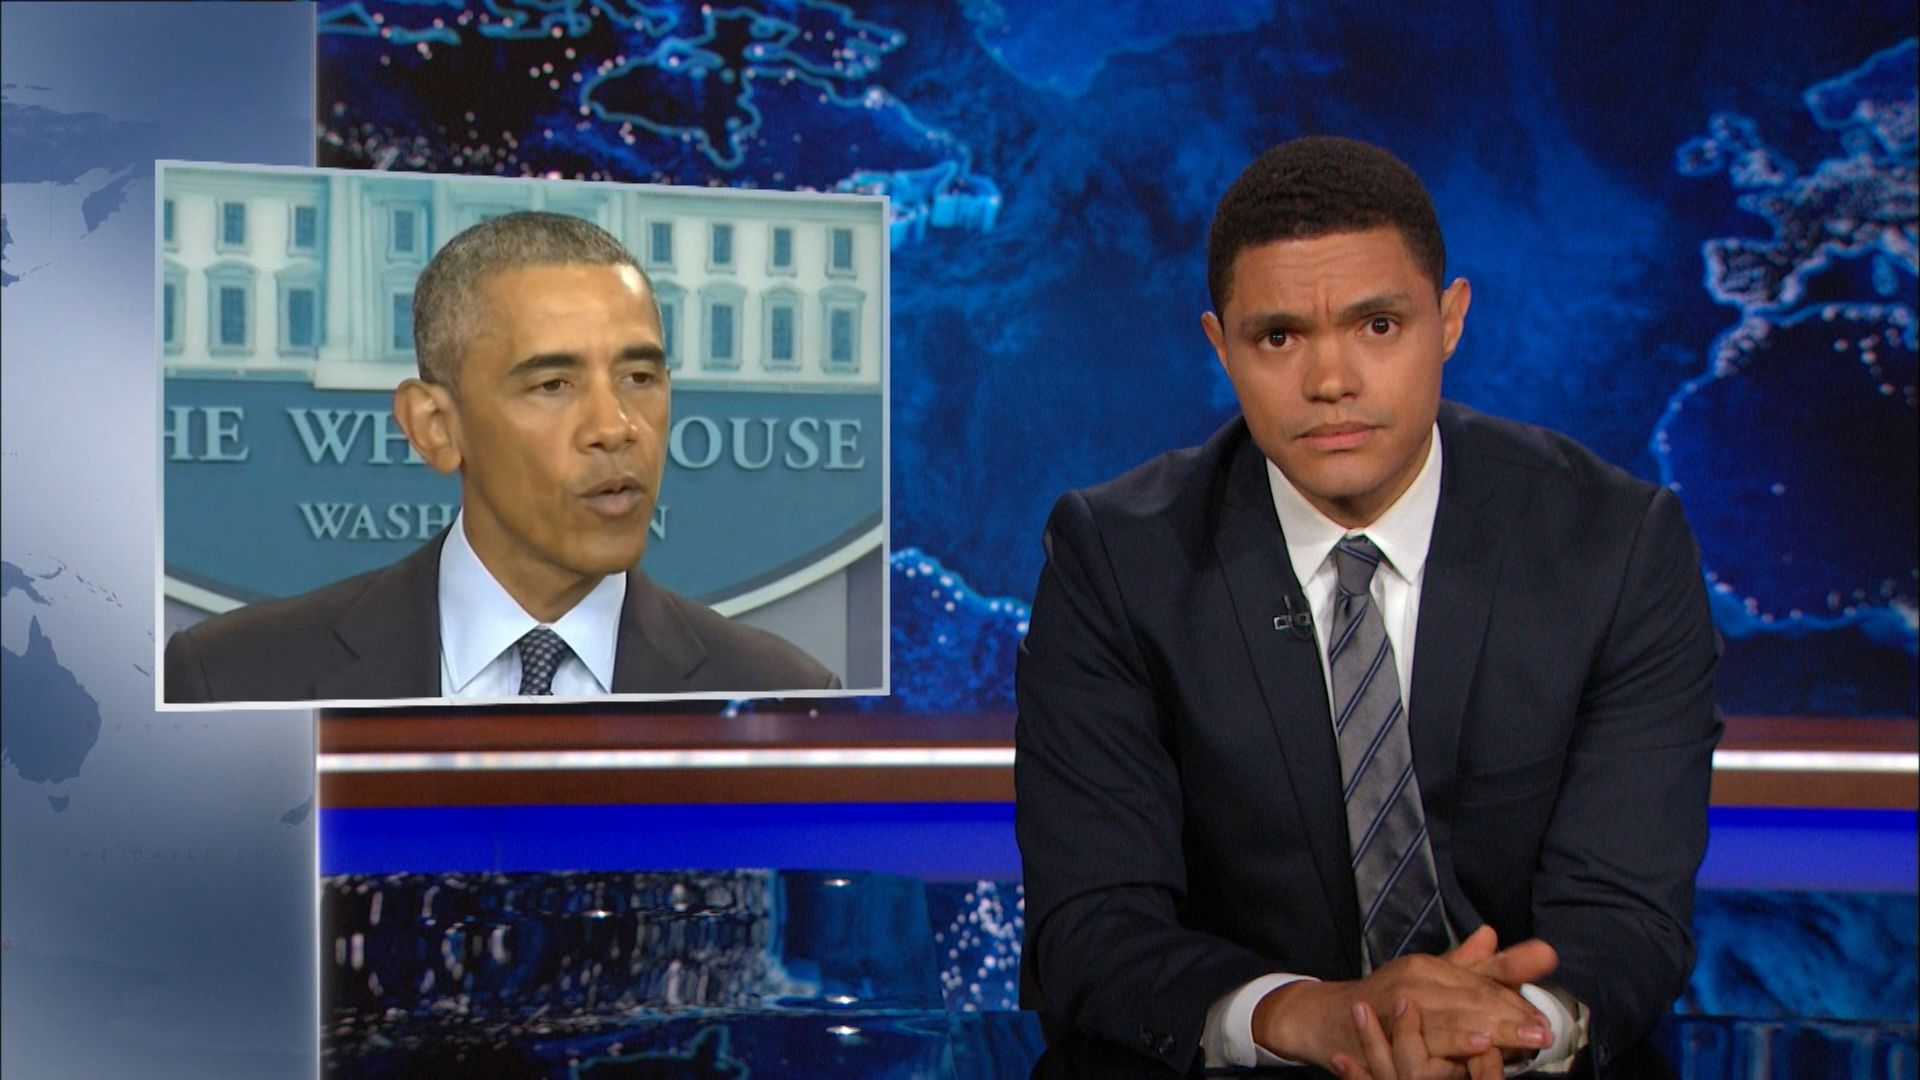 Trevor Reacts to the Orlando Shooting - The Daily Show with Trevor Noah (Video Clip)